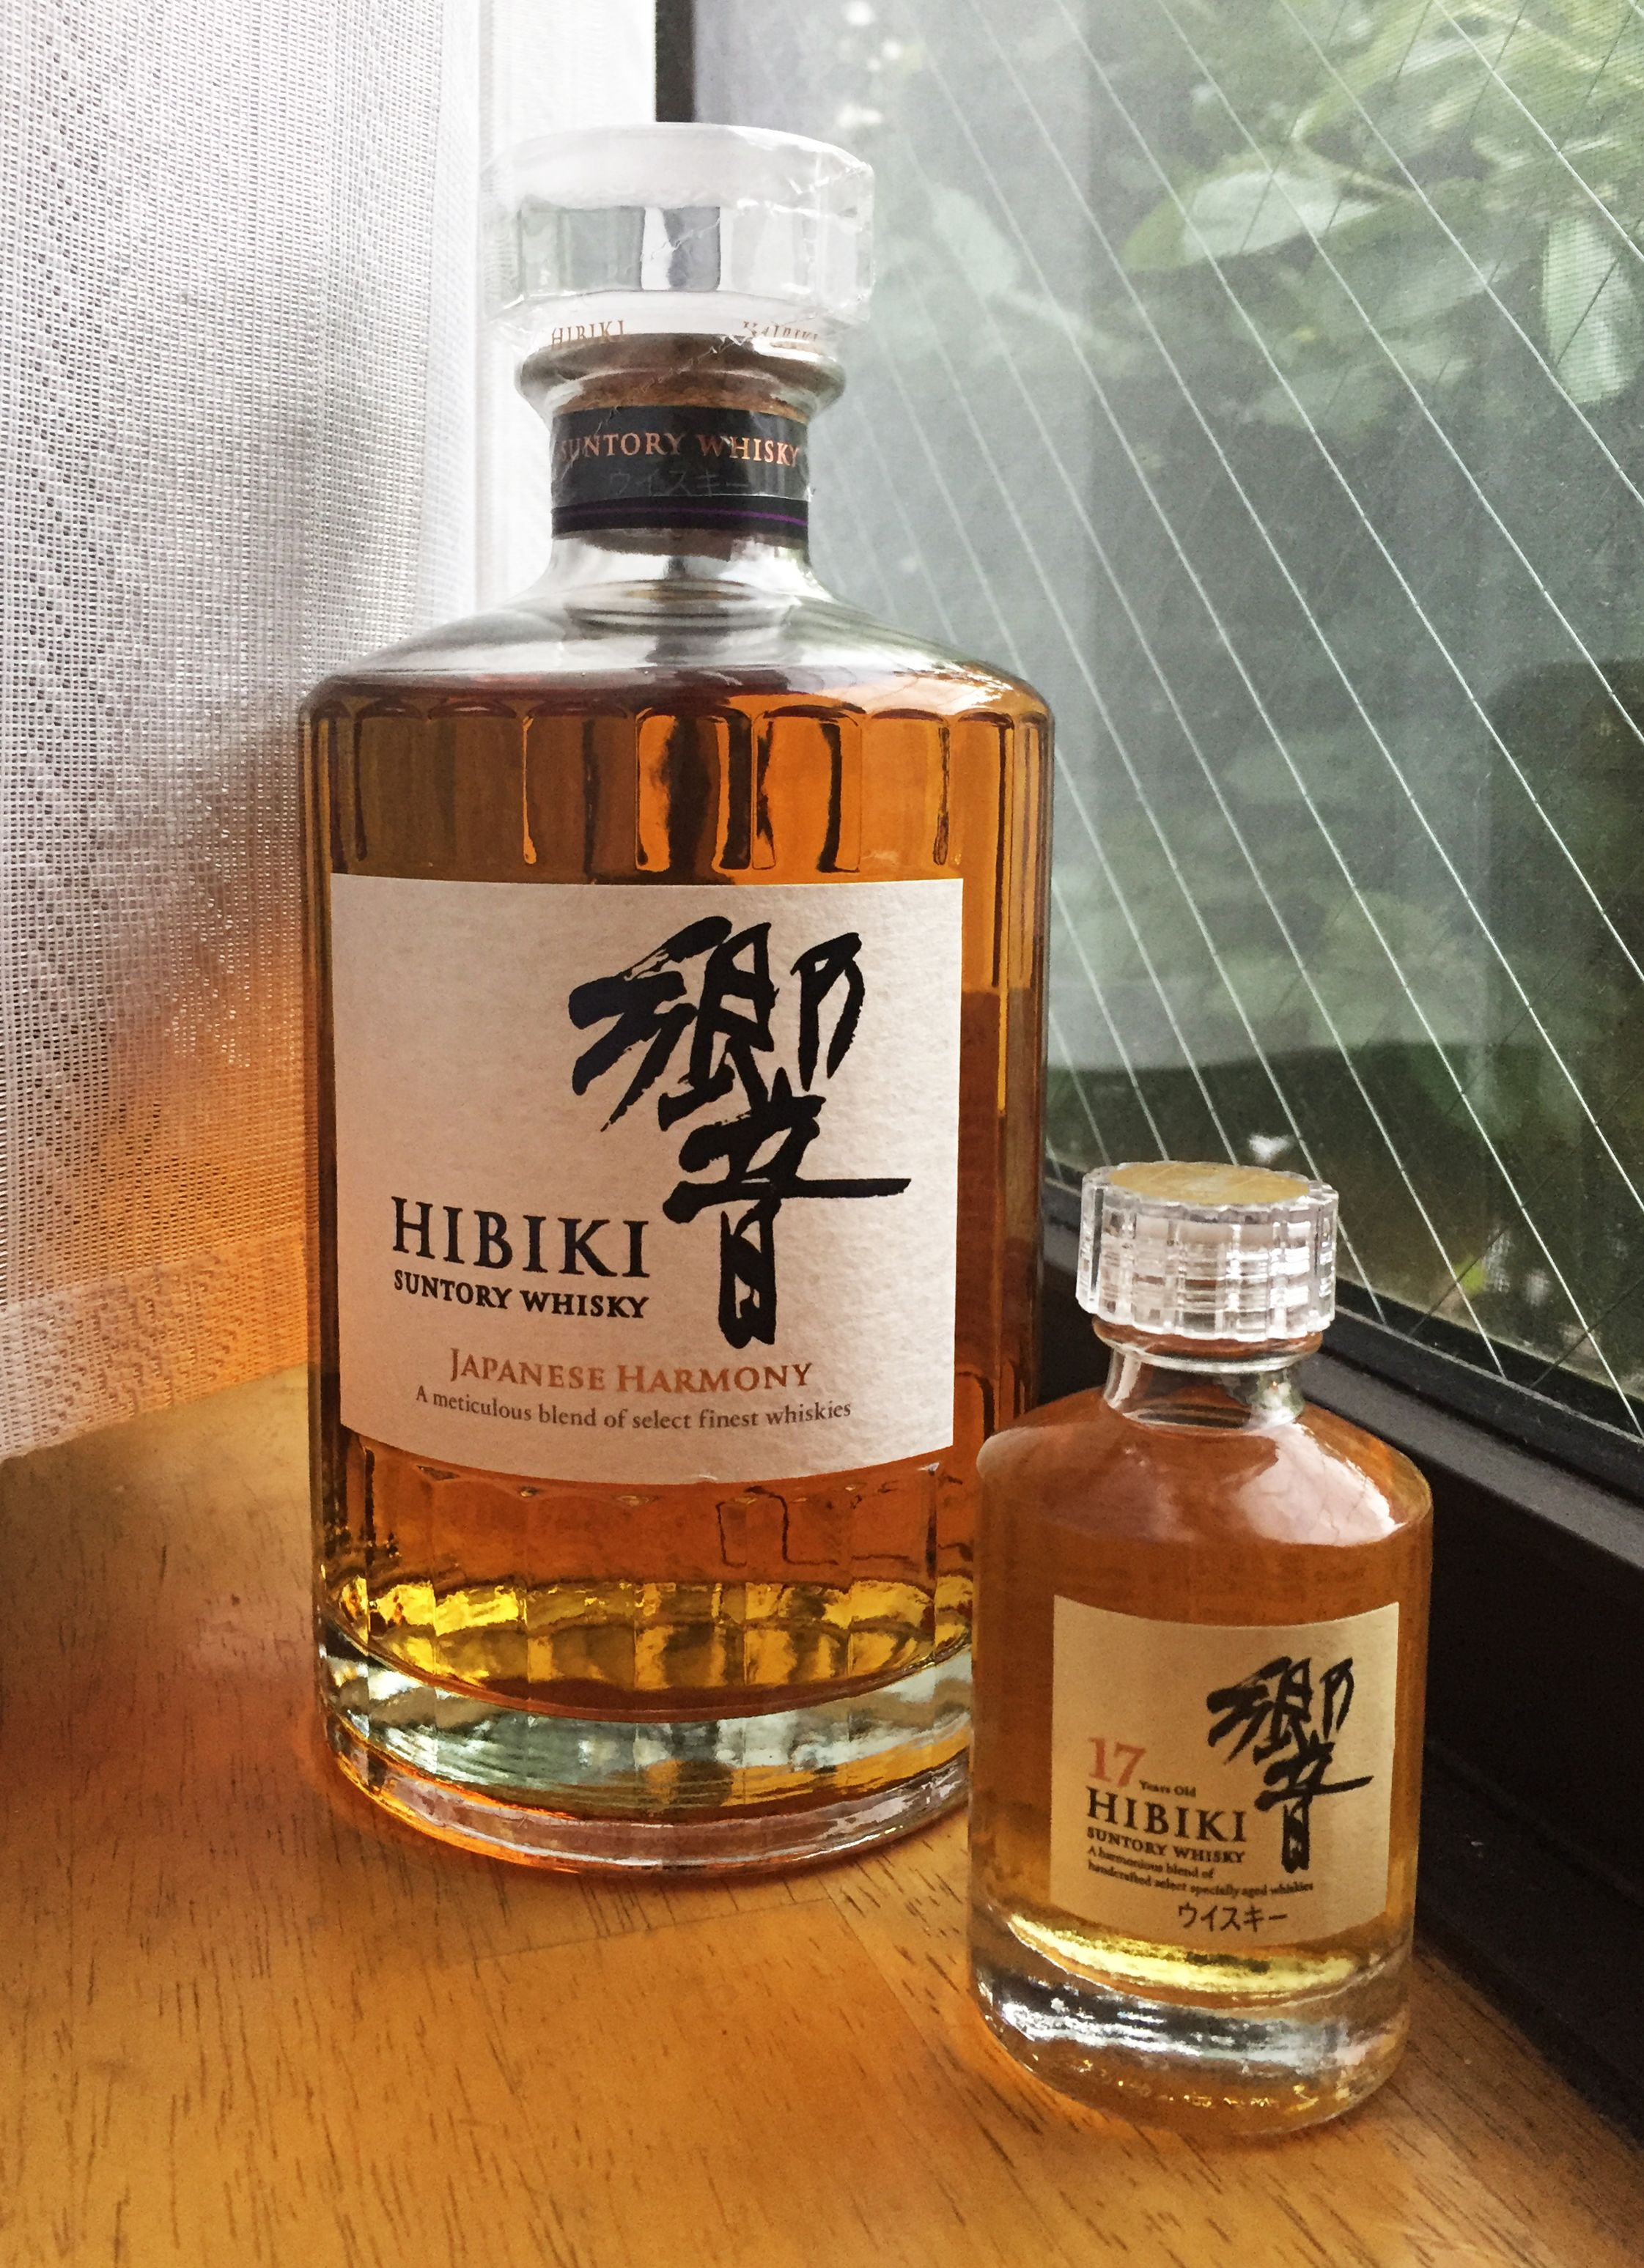 Whisky Erfurt Hibiki Whisky The Complete Information And Online Sale With